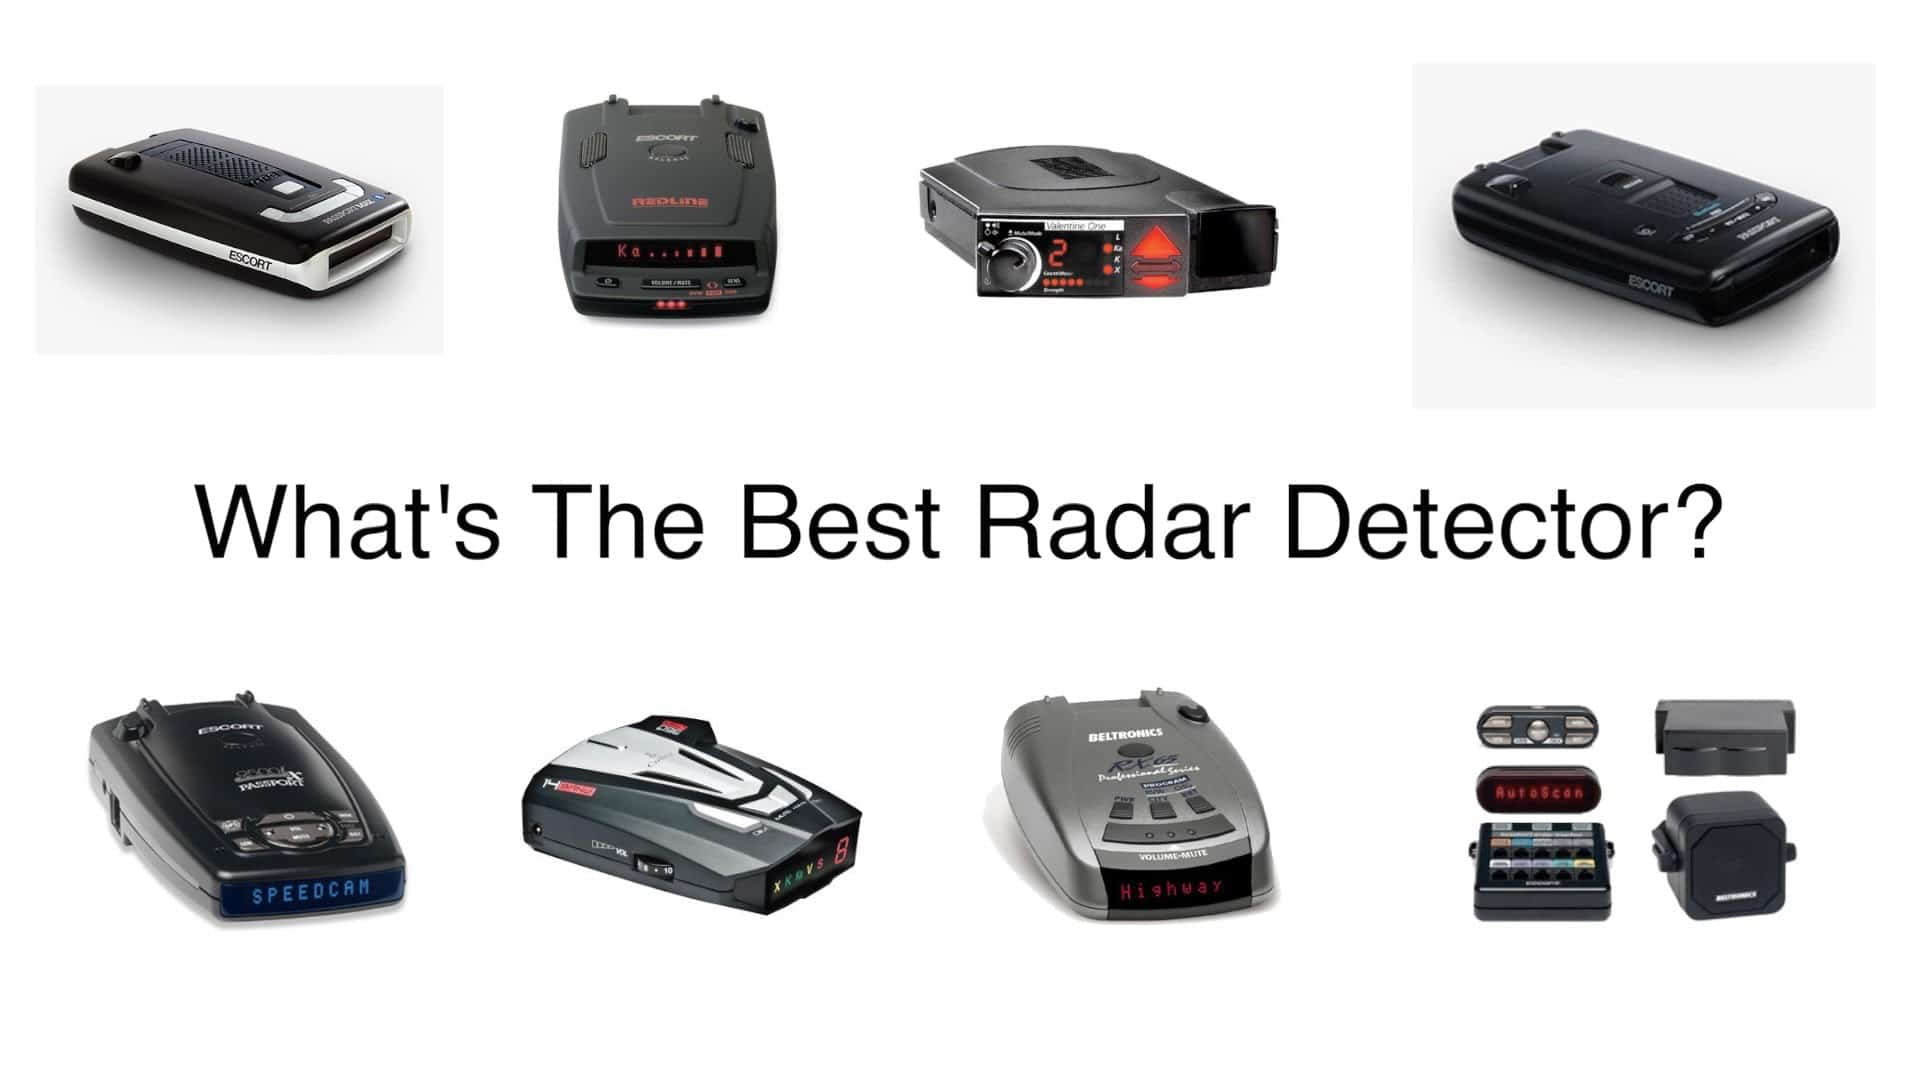 What Is The Best Radar Detector For 2018